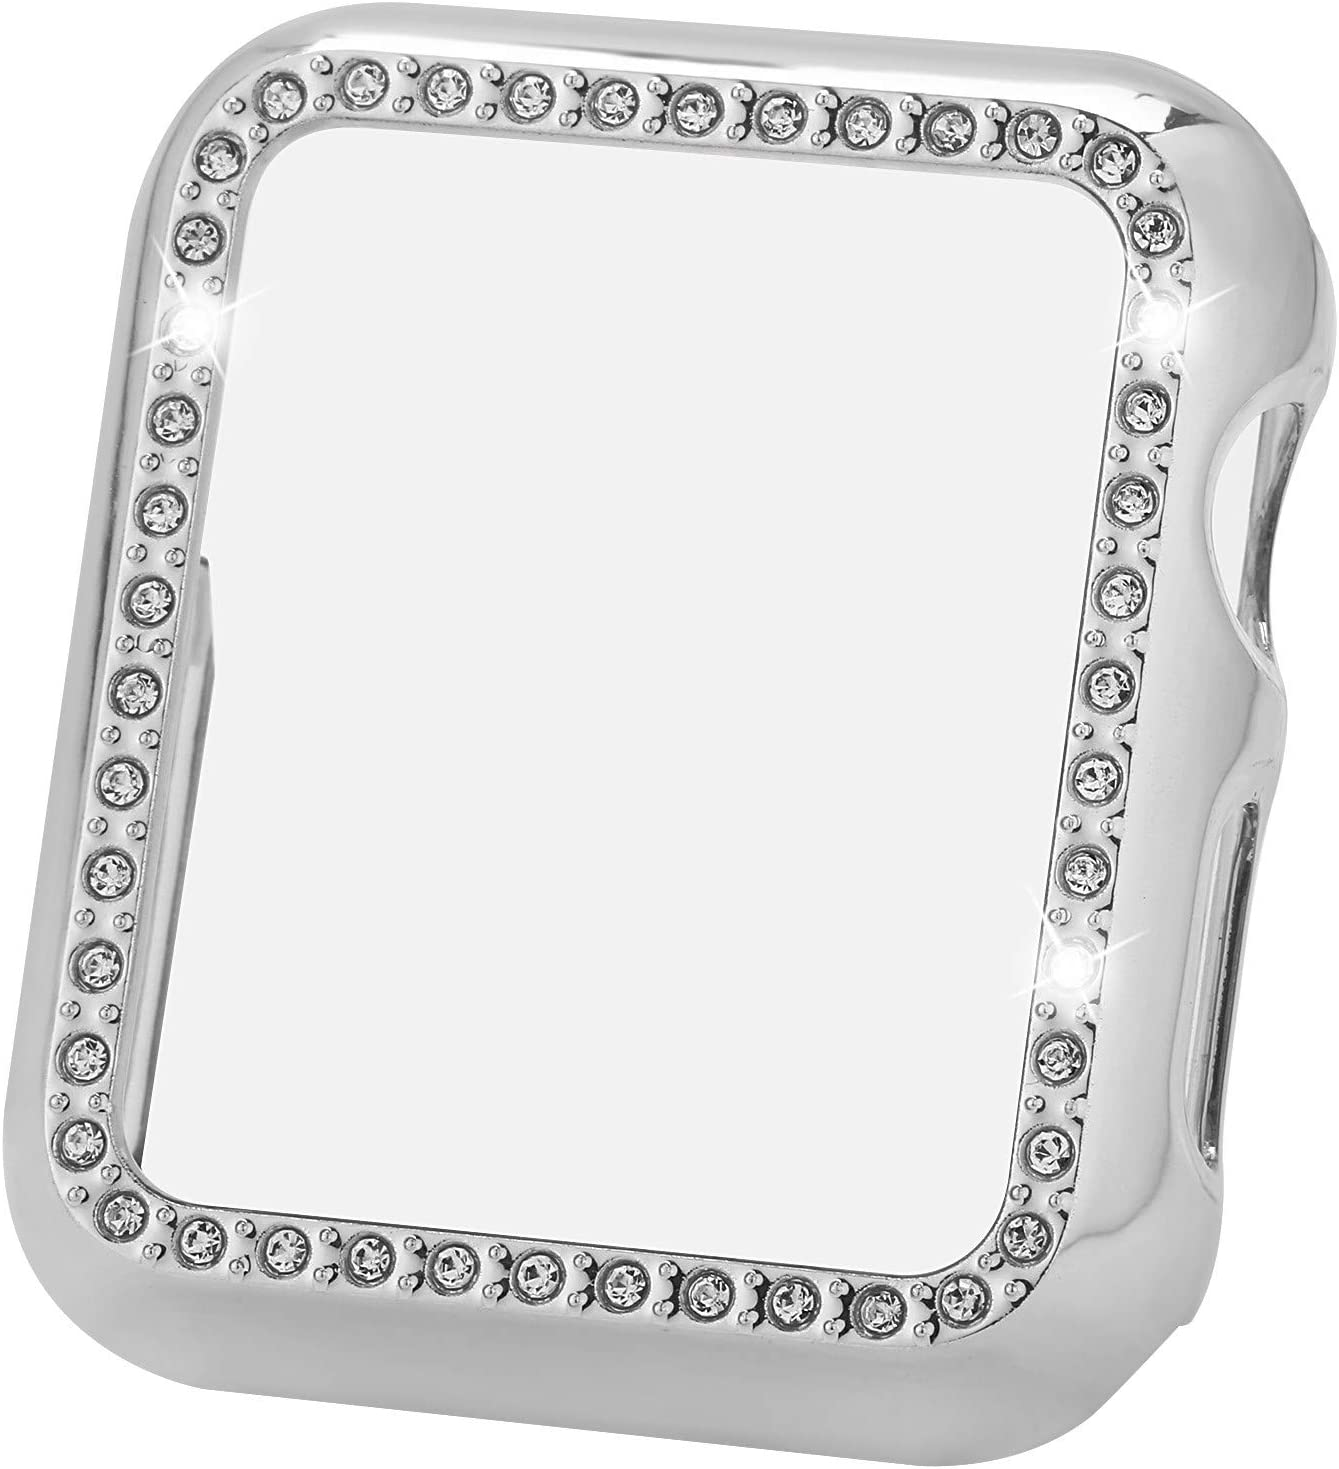 Greaciary Sparkle Compatible with Apple Watch 44mm,Compatible with iWatch Face Bling Crystal Diamond Plate Cover Protective Frame for Apple Watch 5/4 Women(Rhinestone-Silver, 44mm)